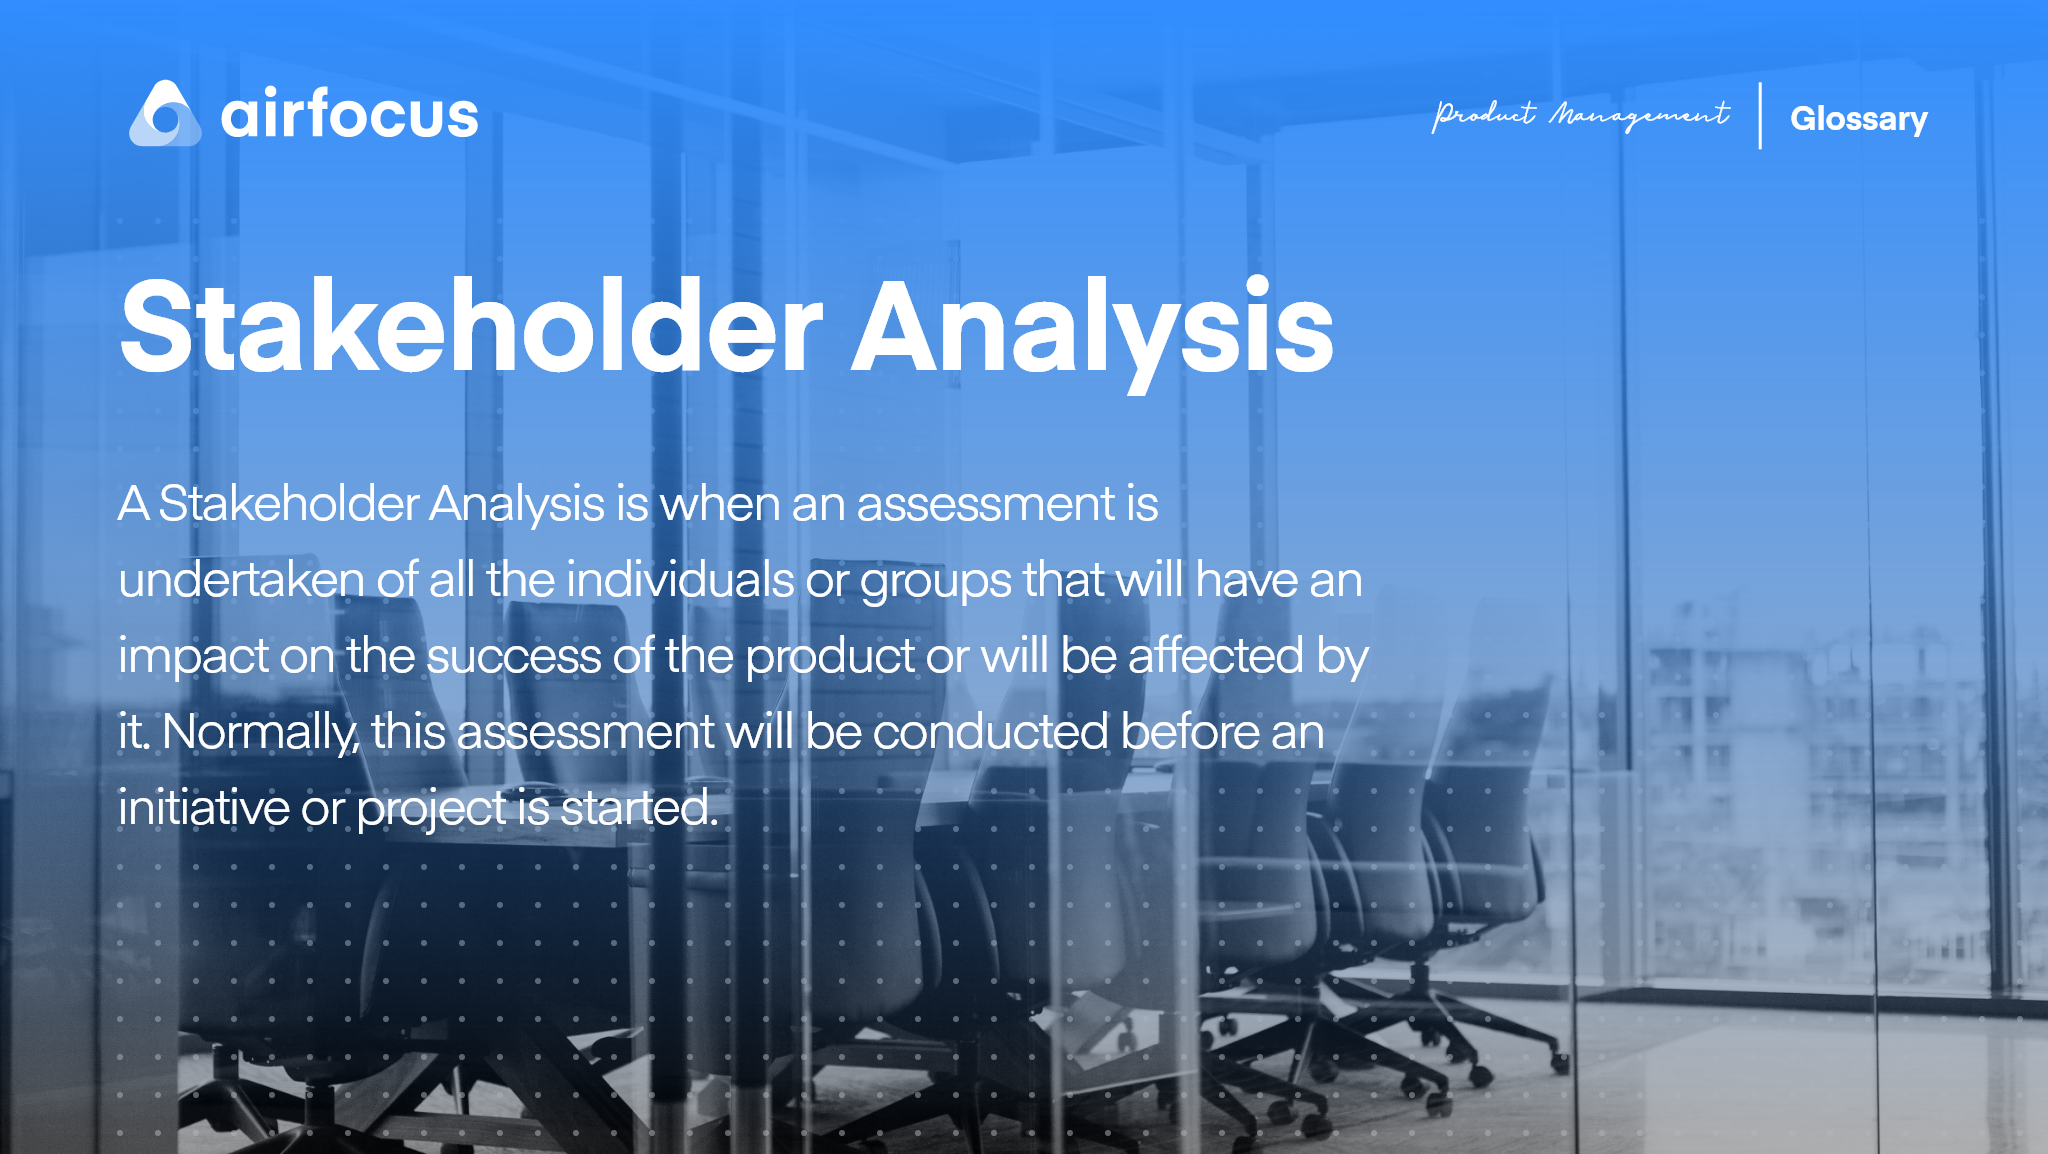 What is Stakeholder Analysis?